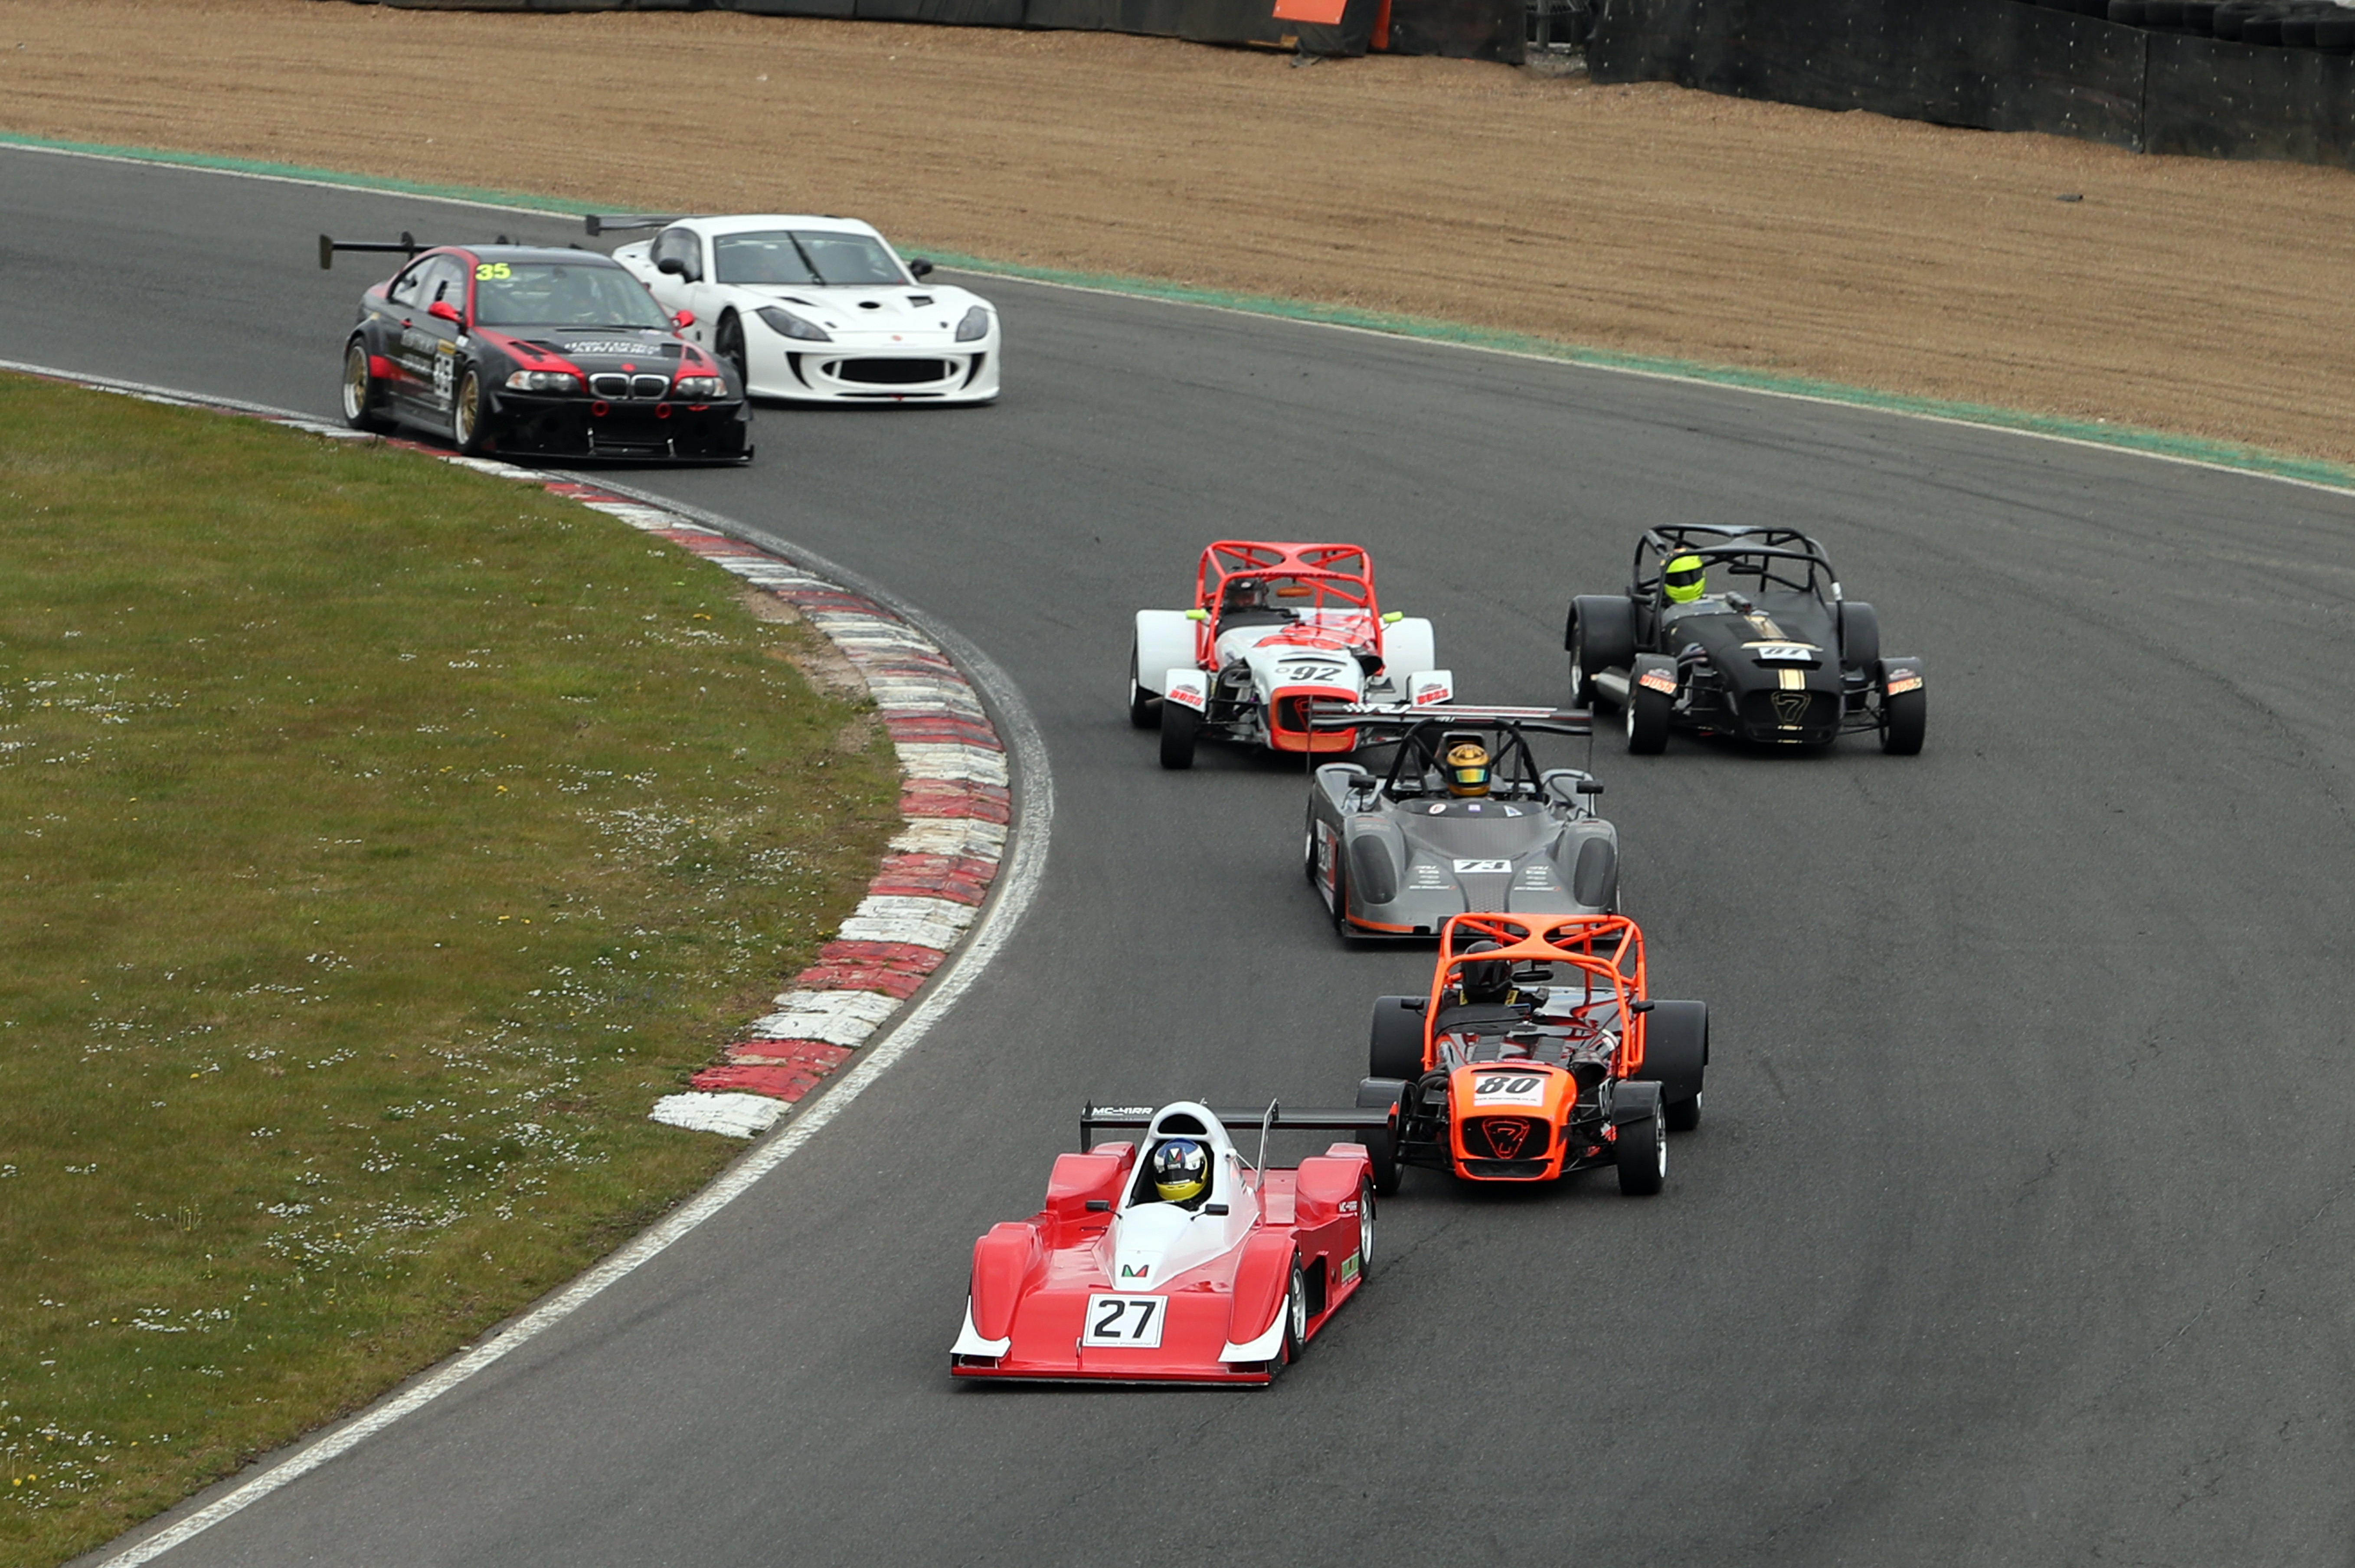 Scott Mittell leads the way in an Allcomers race at Brands Hatch. He eventually won by over 50 seconds